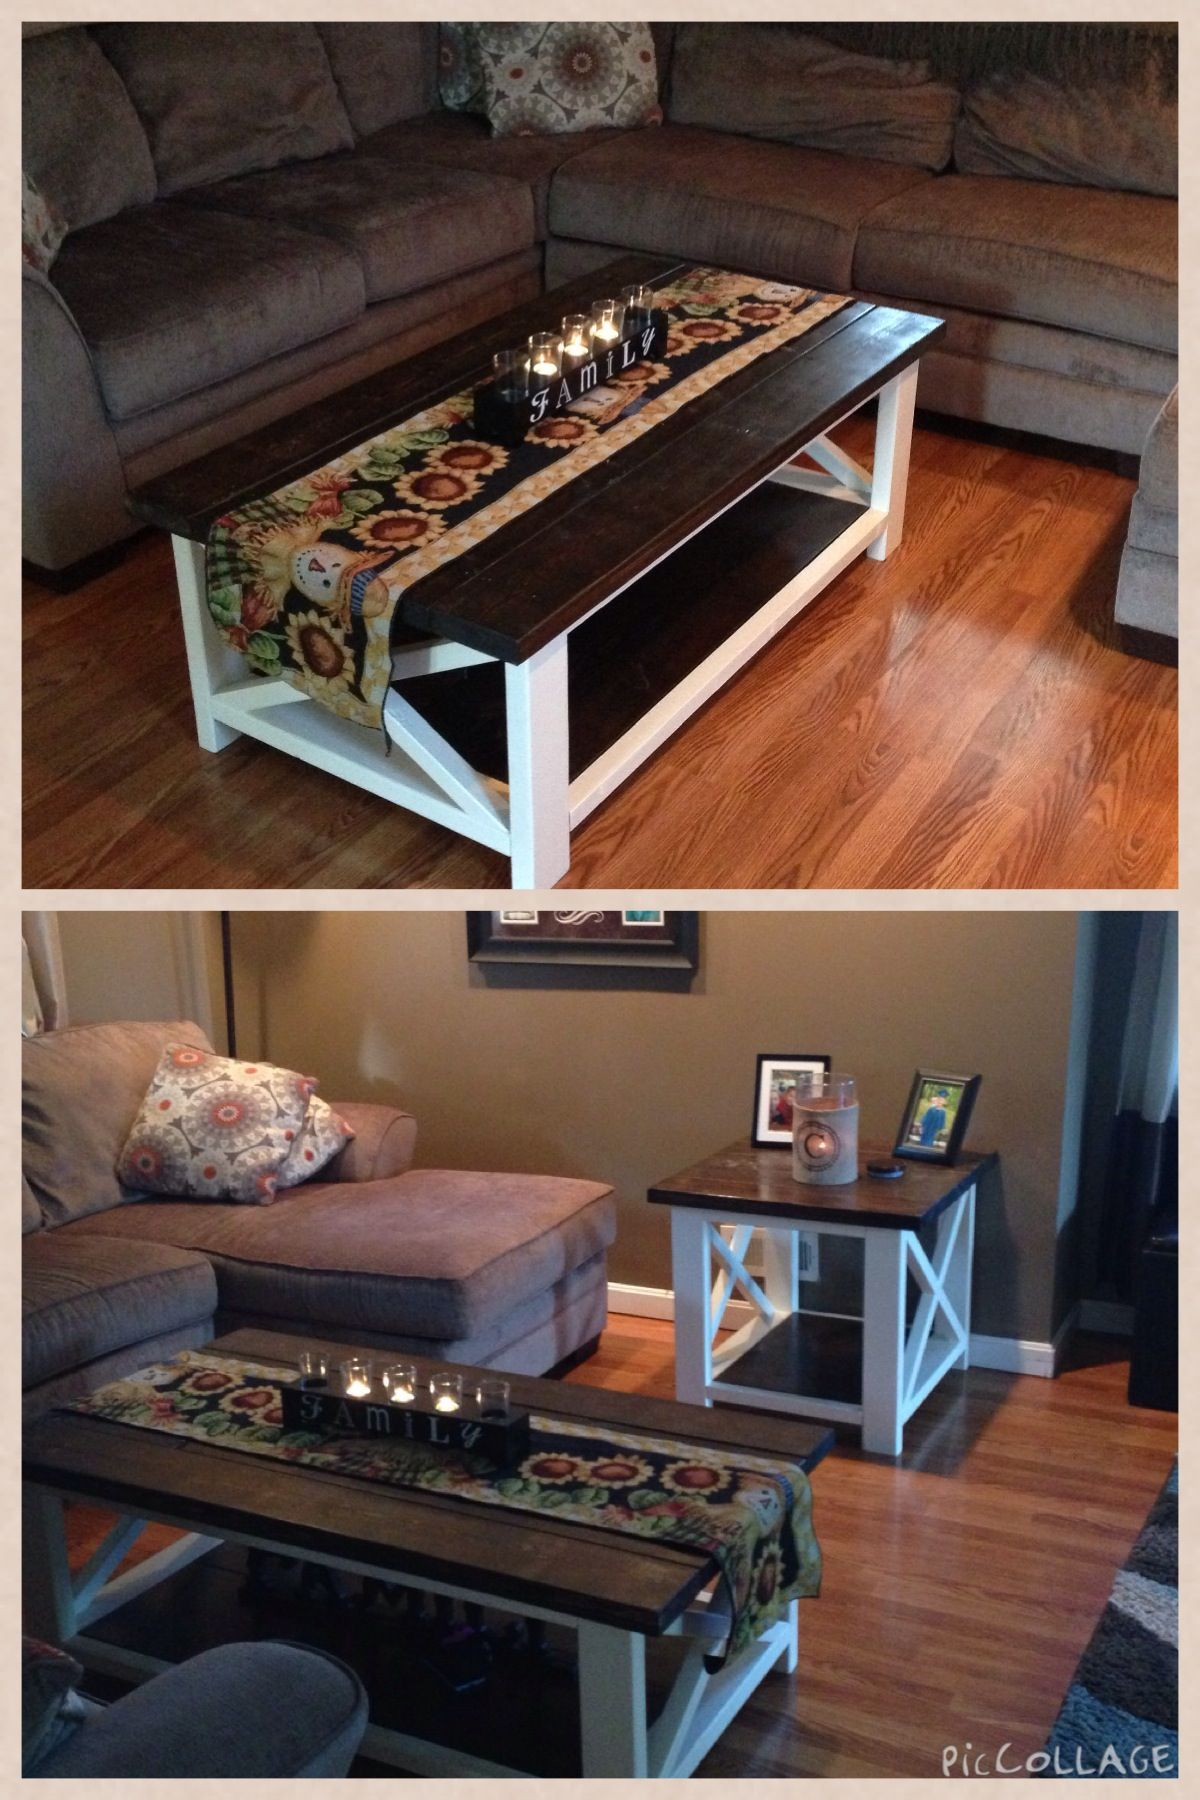 Handmade Coffee Table and End Table Set in Peyton's Garage